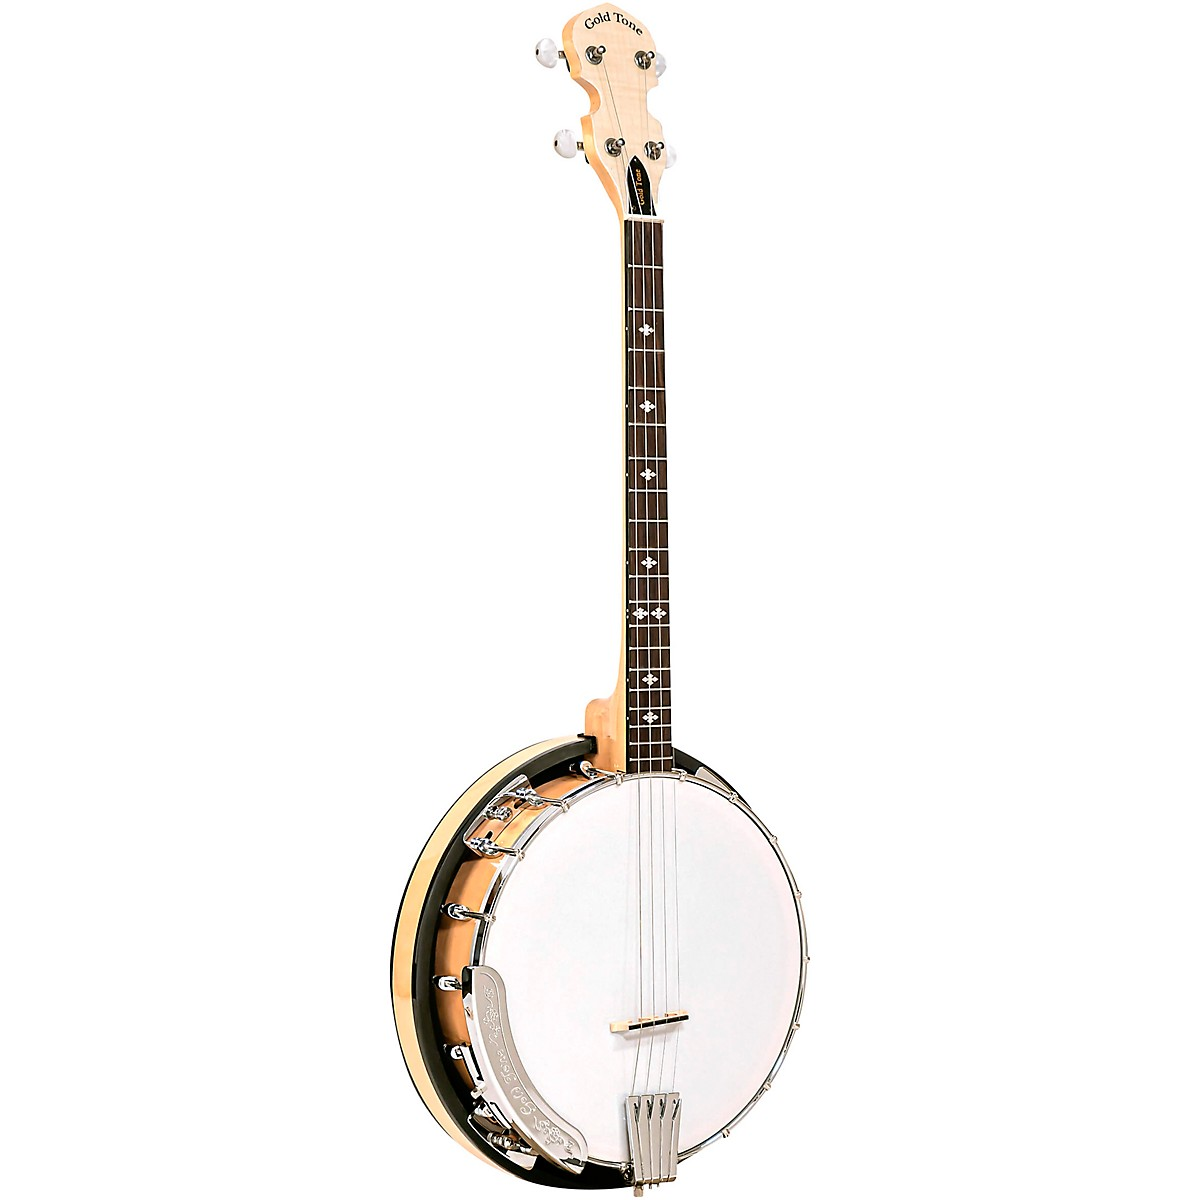 Gold Tone Cripple Creek Tenor Banjo